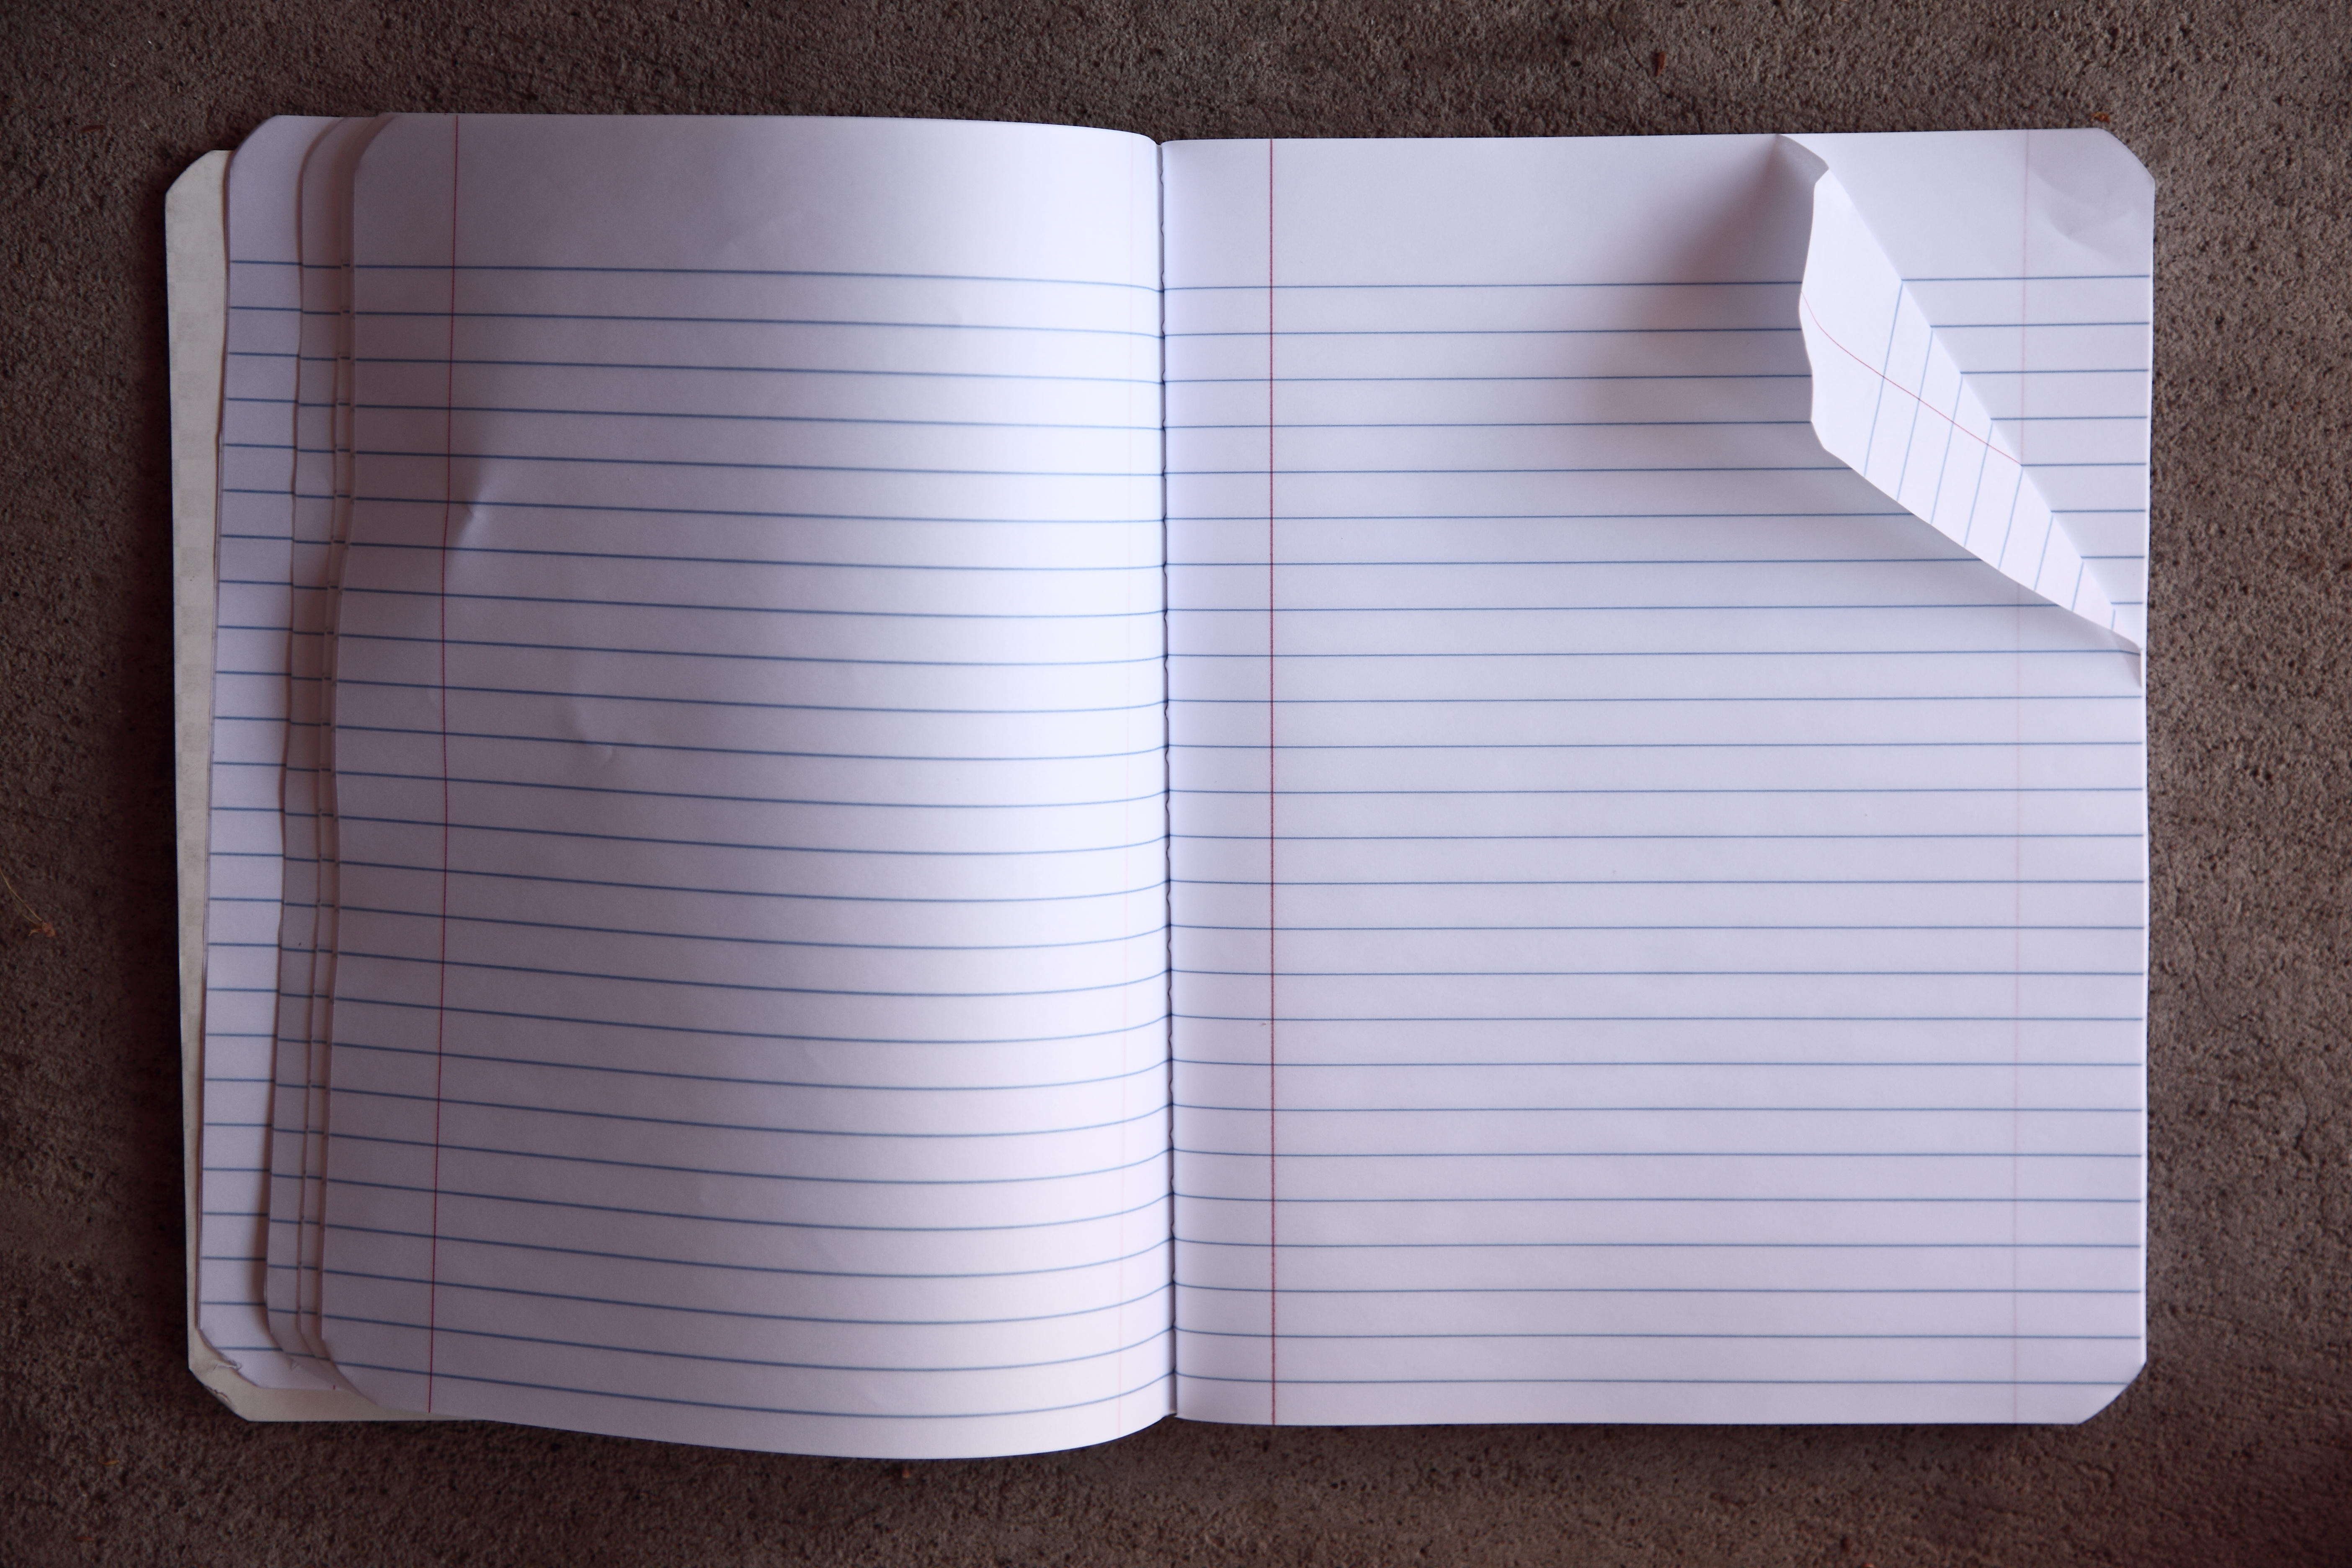 How to open a notebook